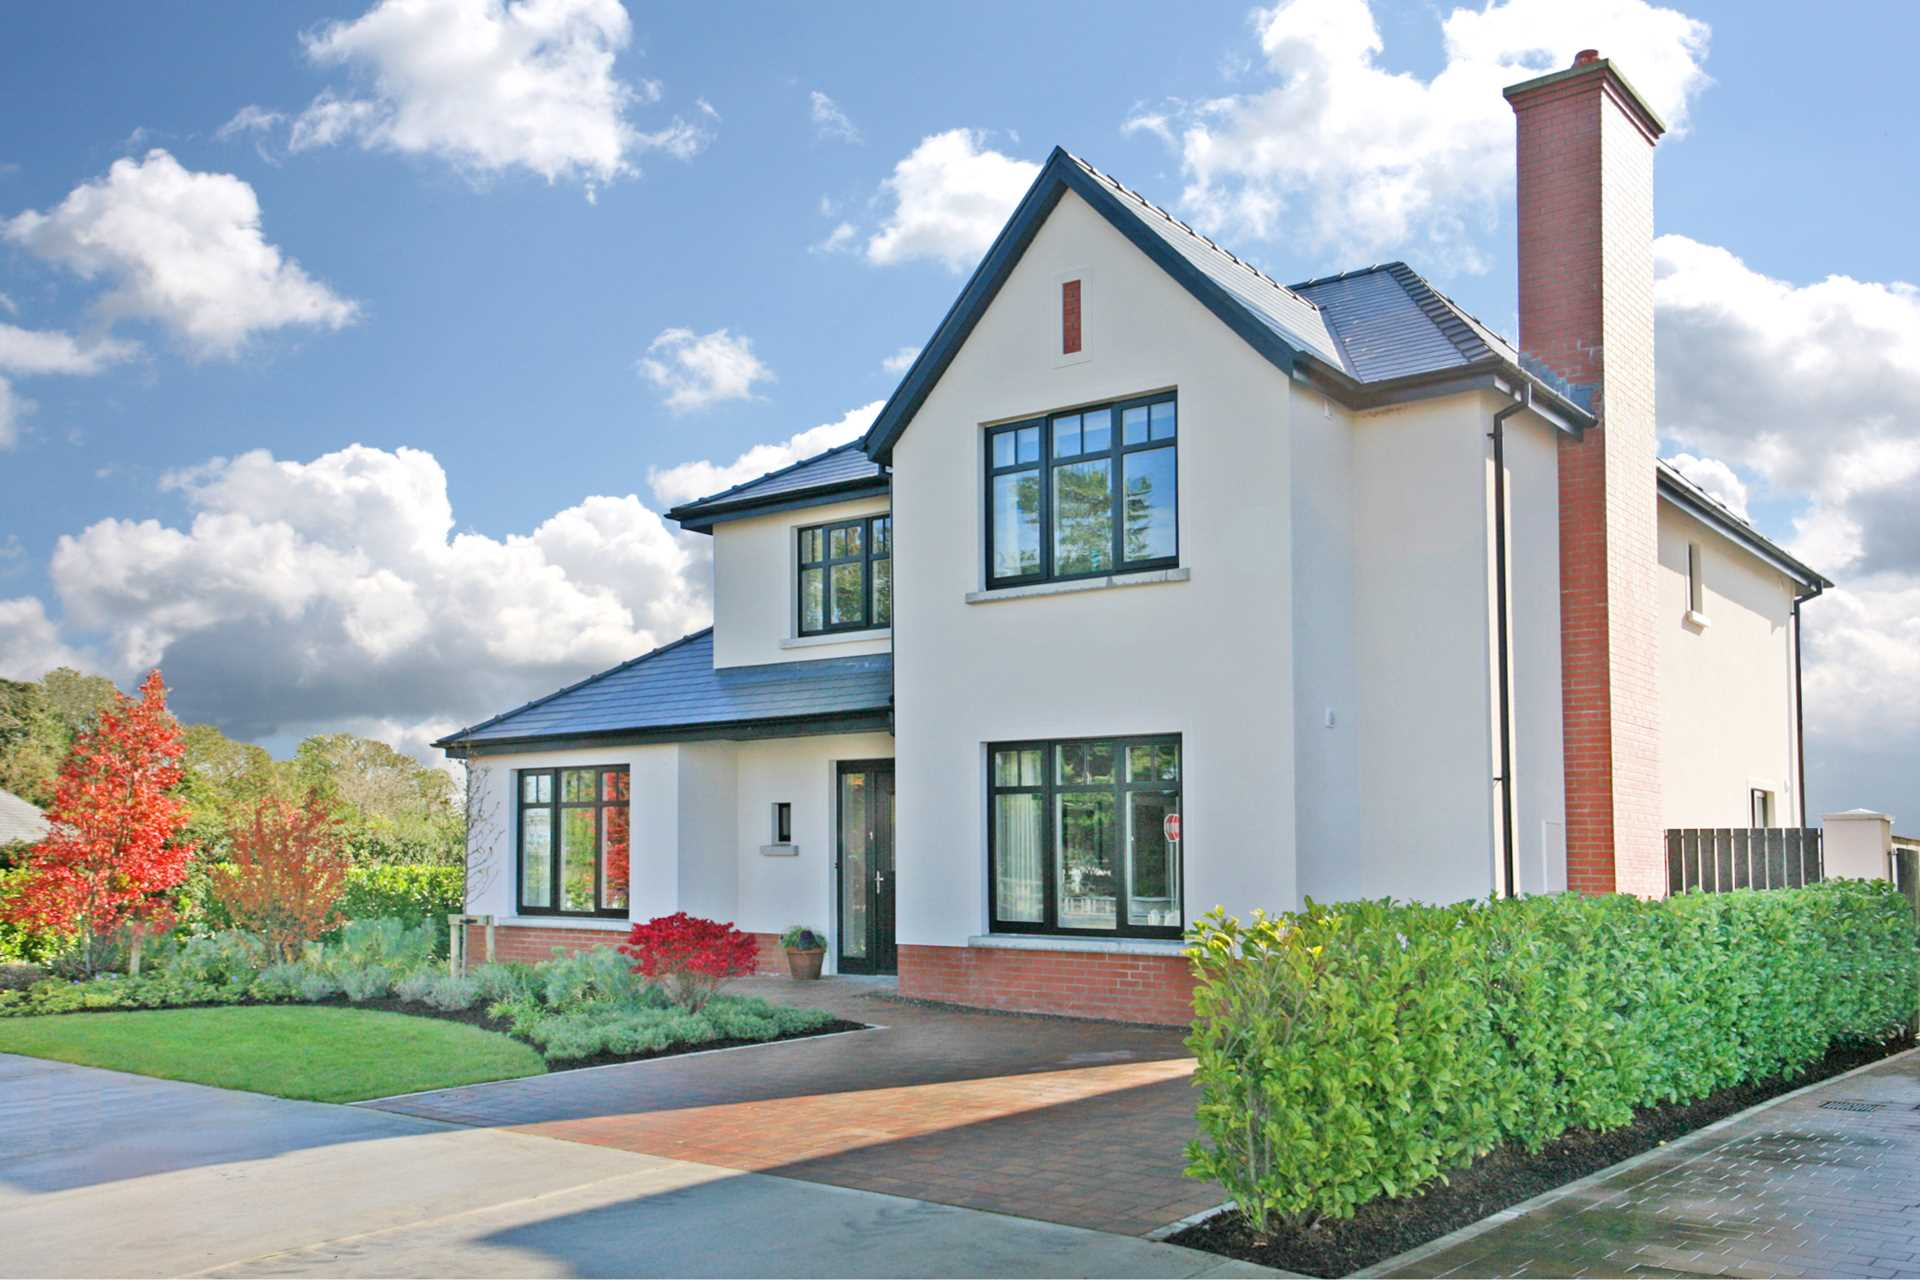 1 The Willow, Manor Brook, Adare, Co. Limerick